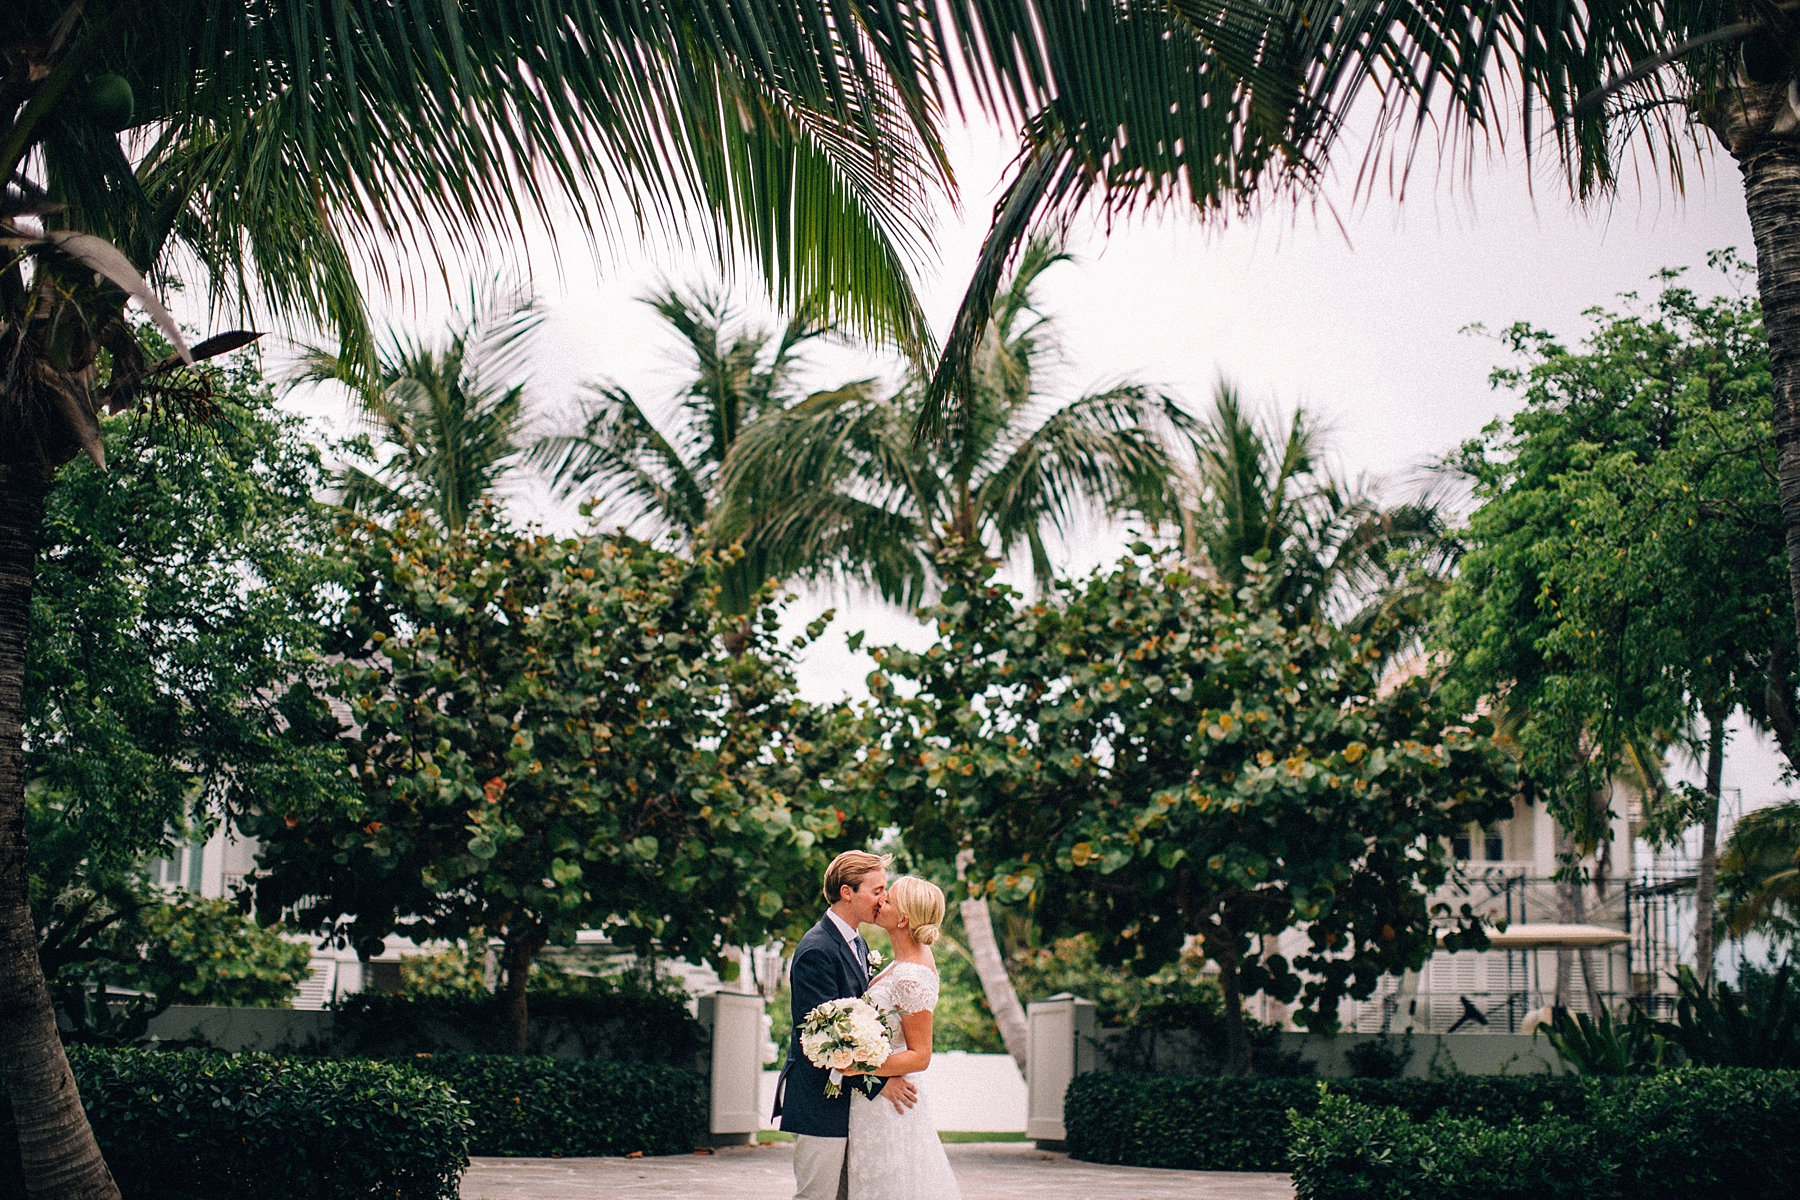 briland-wedding-photographer-harbour-island-bahamas_0025.jpg